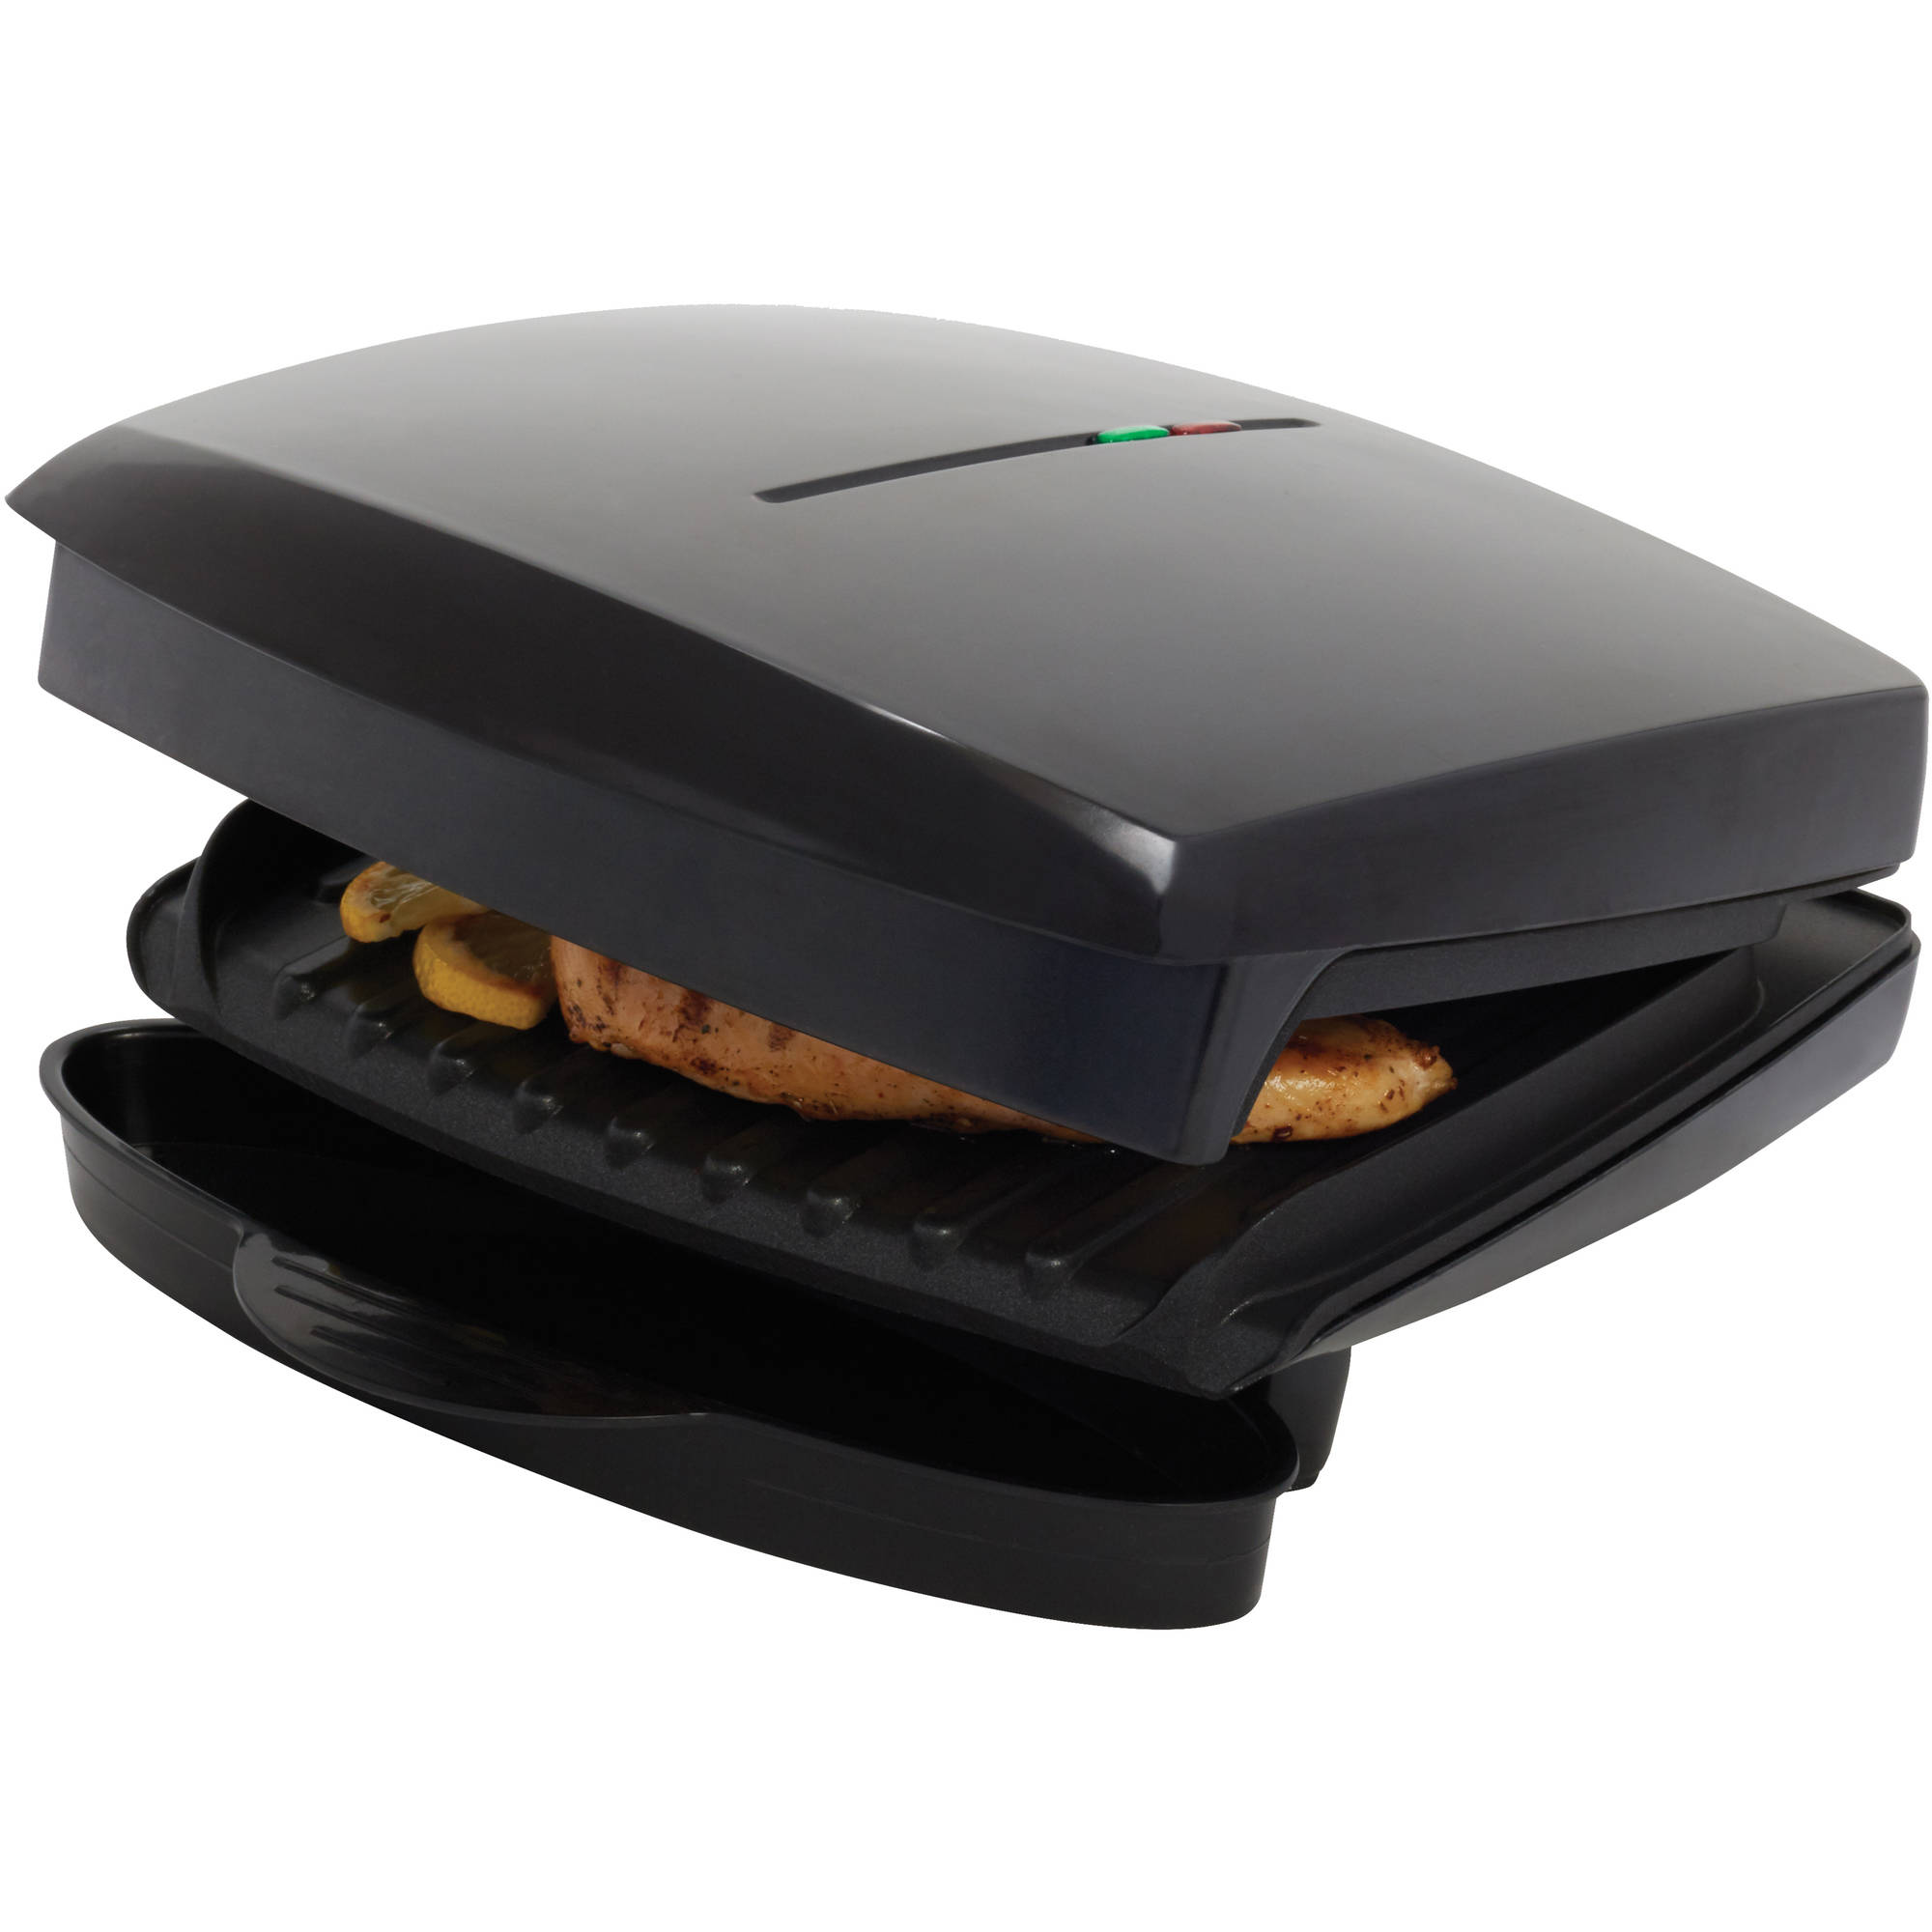 Mainstays Mini Indoor Grill, Non-Stick, 2 serving